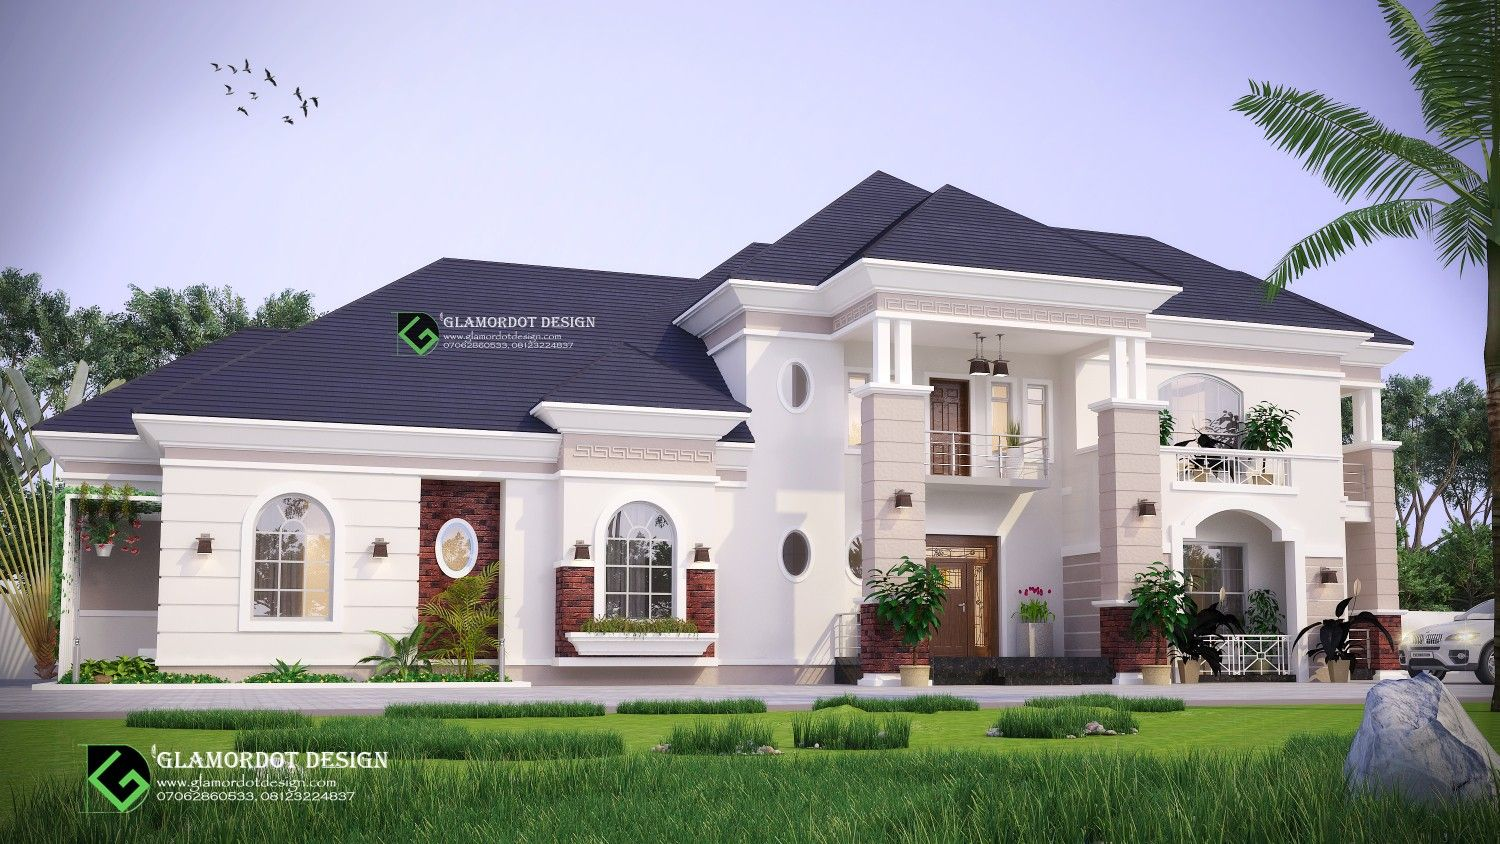 Architectural Design Of A Proposed Modern 5 Bedroom Bungalow With Penthouse Plot Size 6 Bungalow House Design Modern Bungalow House Plans House Outside Design